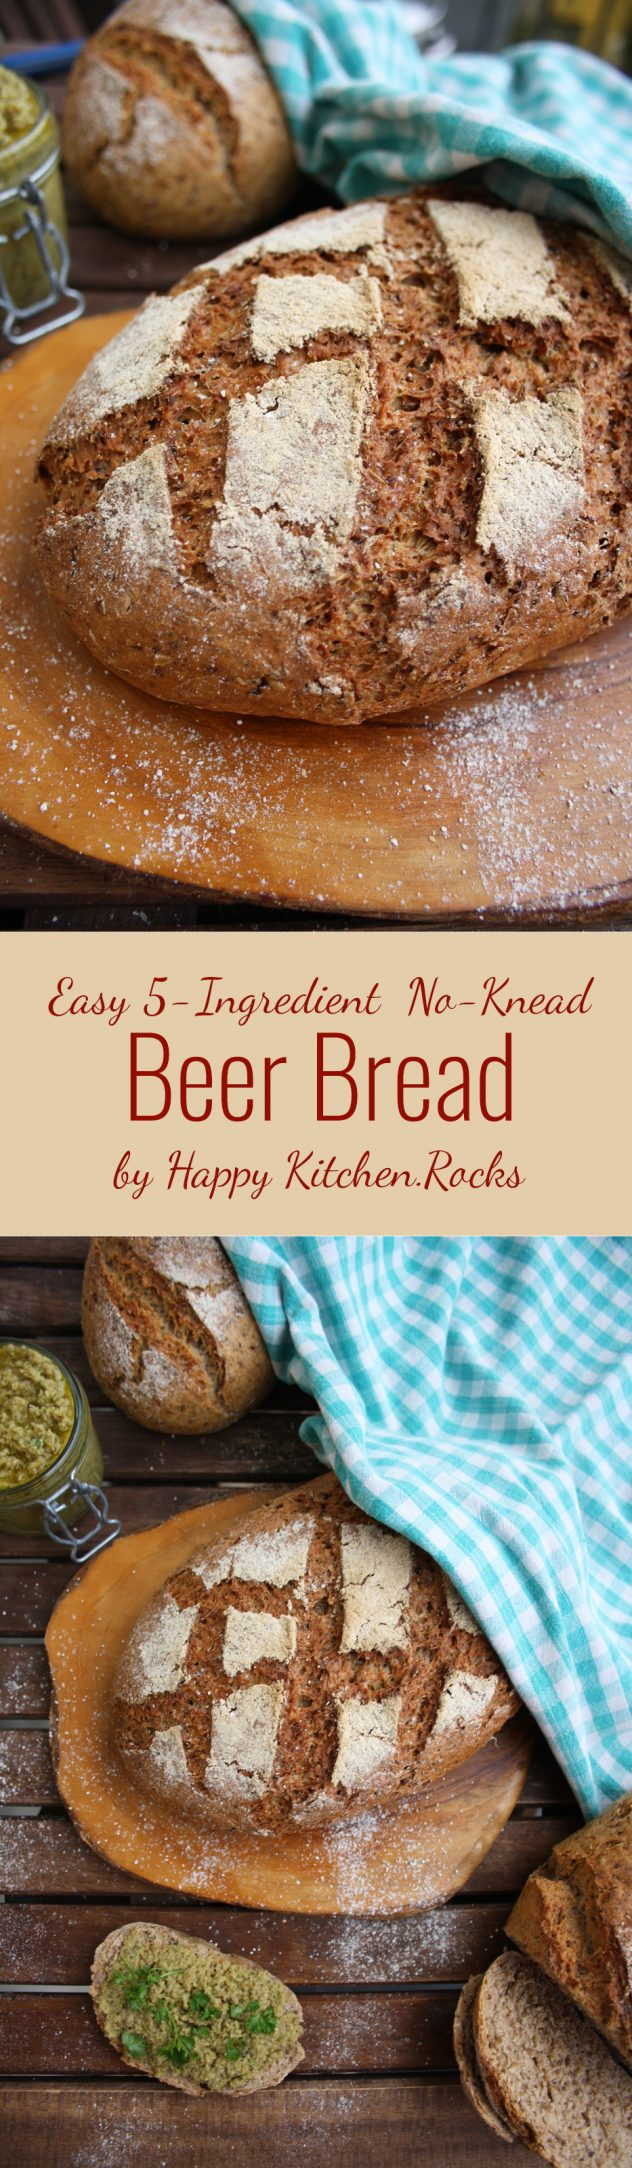 Easy and crusty no-knead 5-ingredient beer bread recipe. Sweet, delicious, healthy and nutritious bread with a little prickliness.